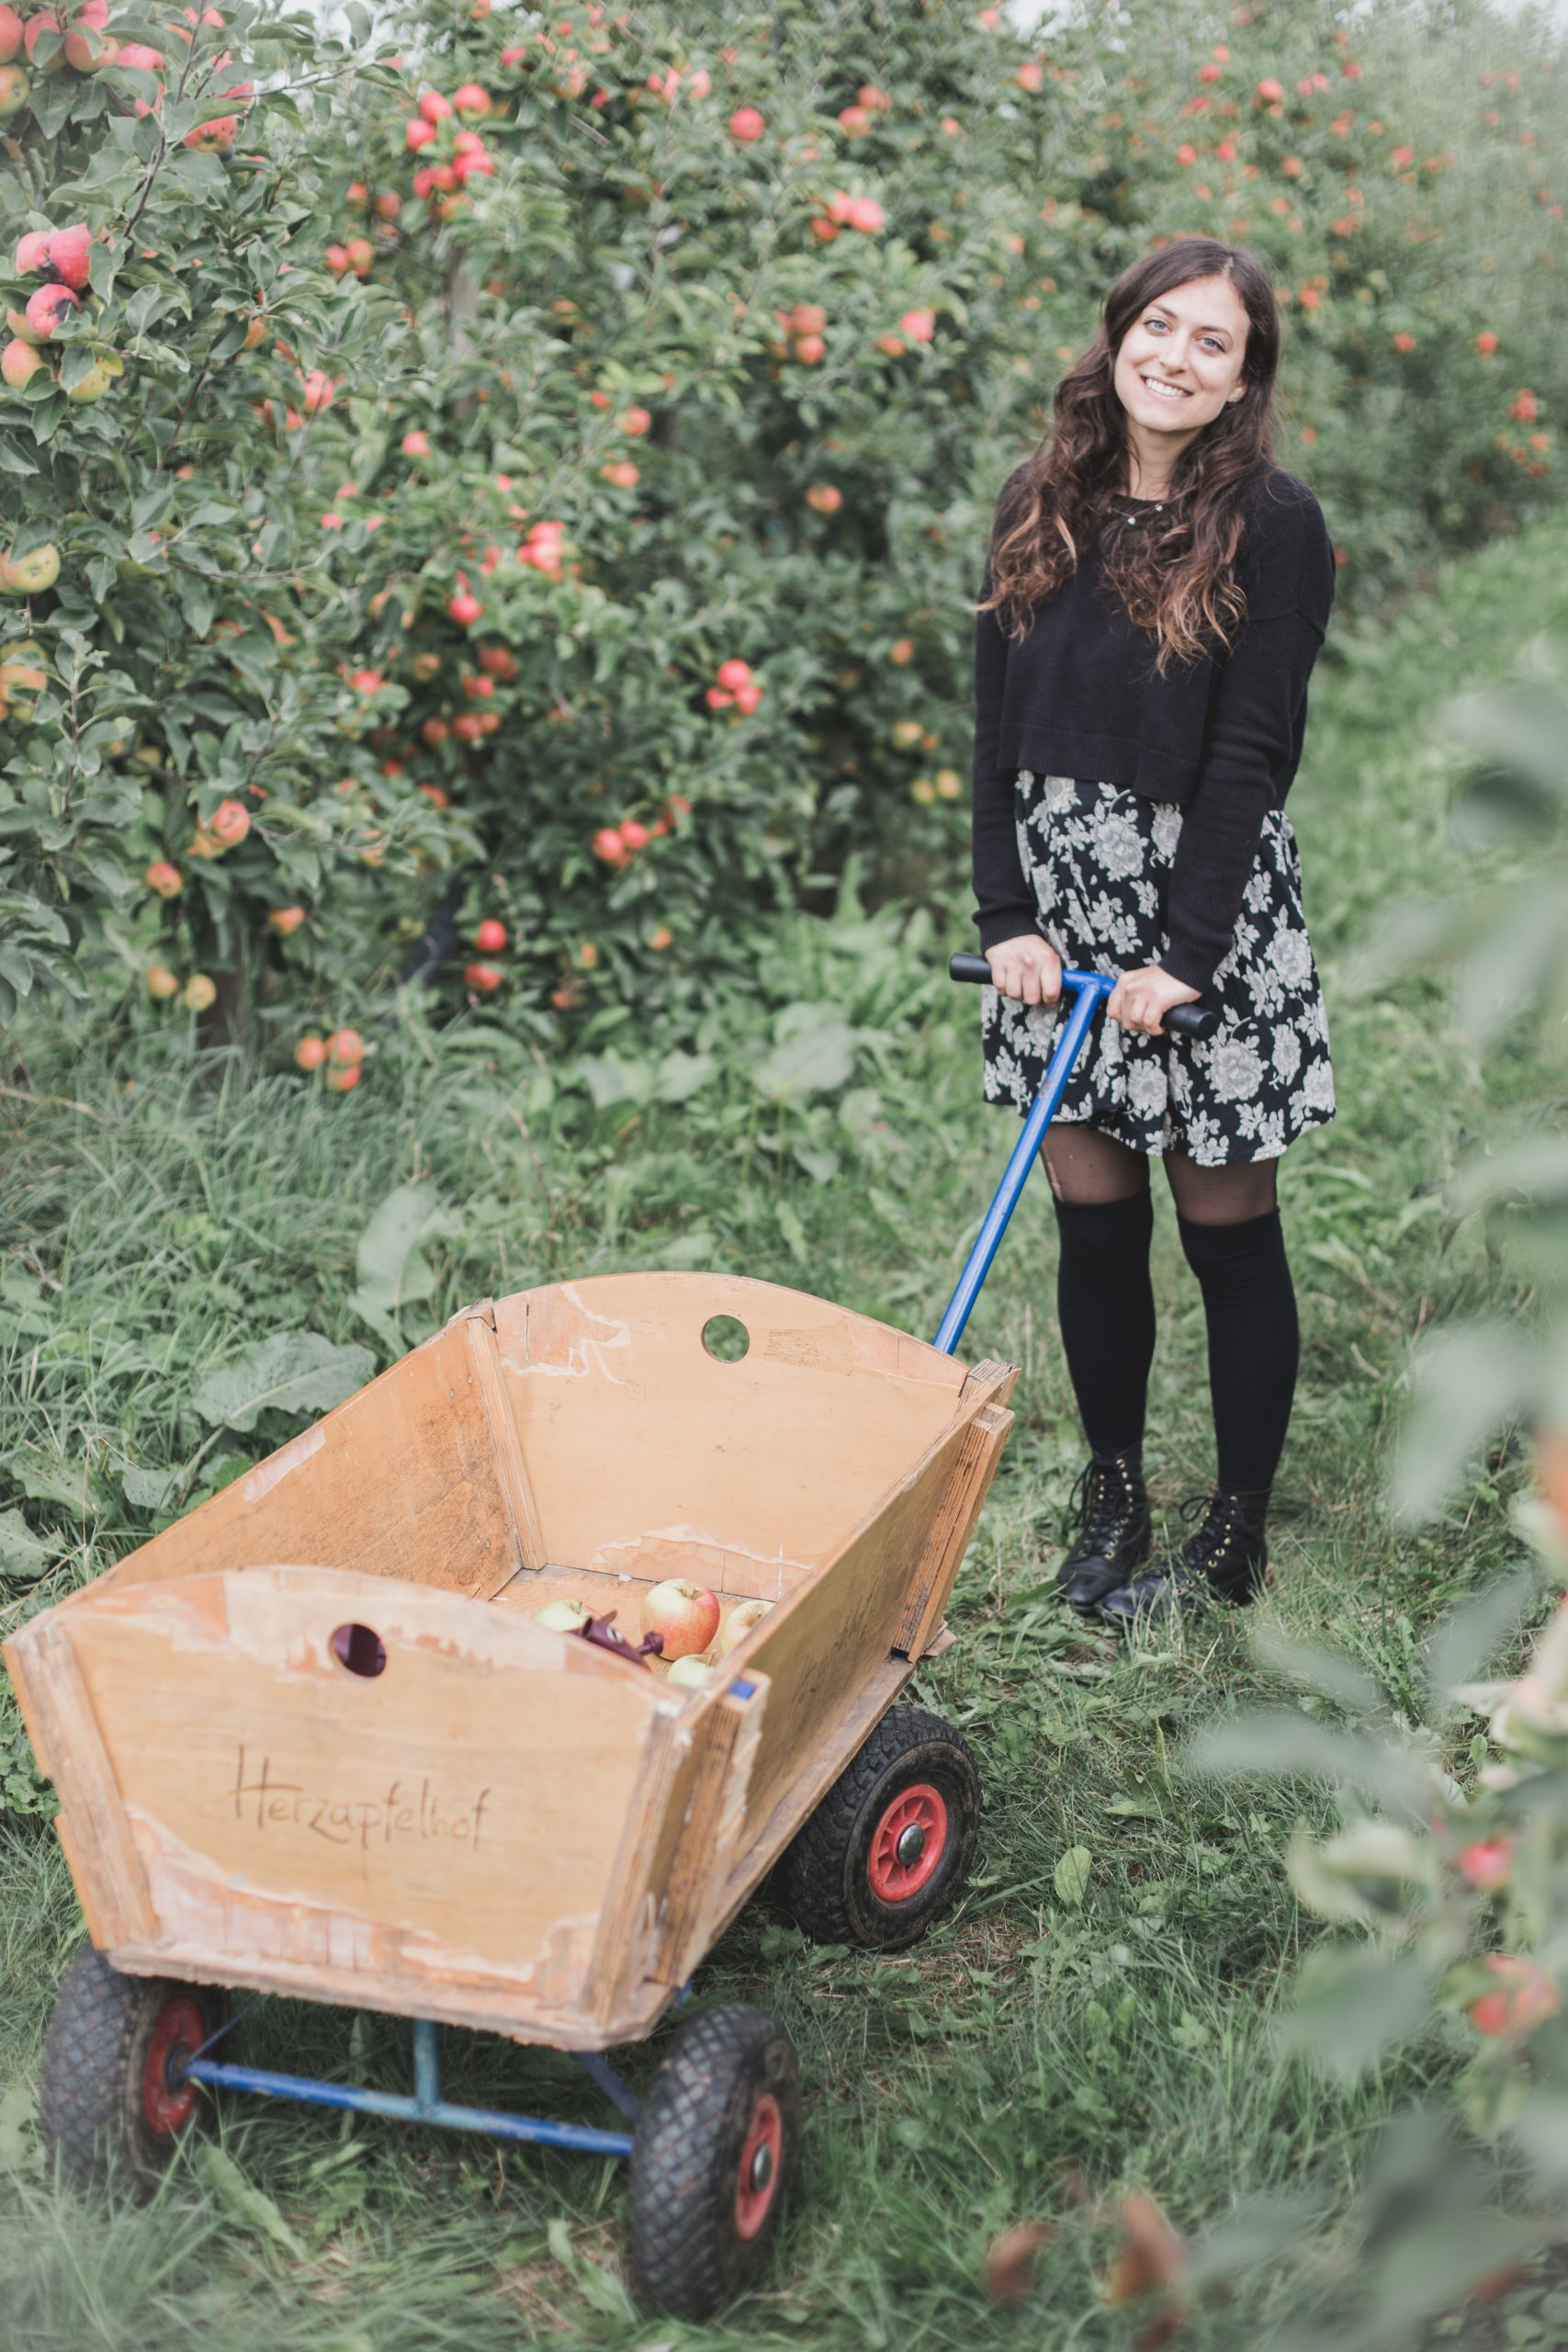 Kelsey with wooden cart with apples in it surrounded by apple trees in Altes Land, Germany